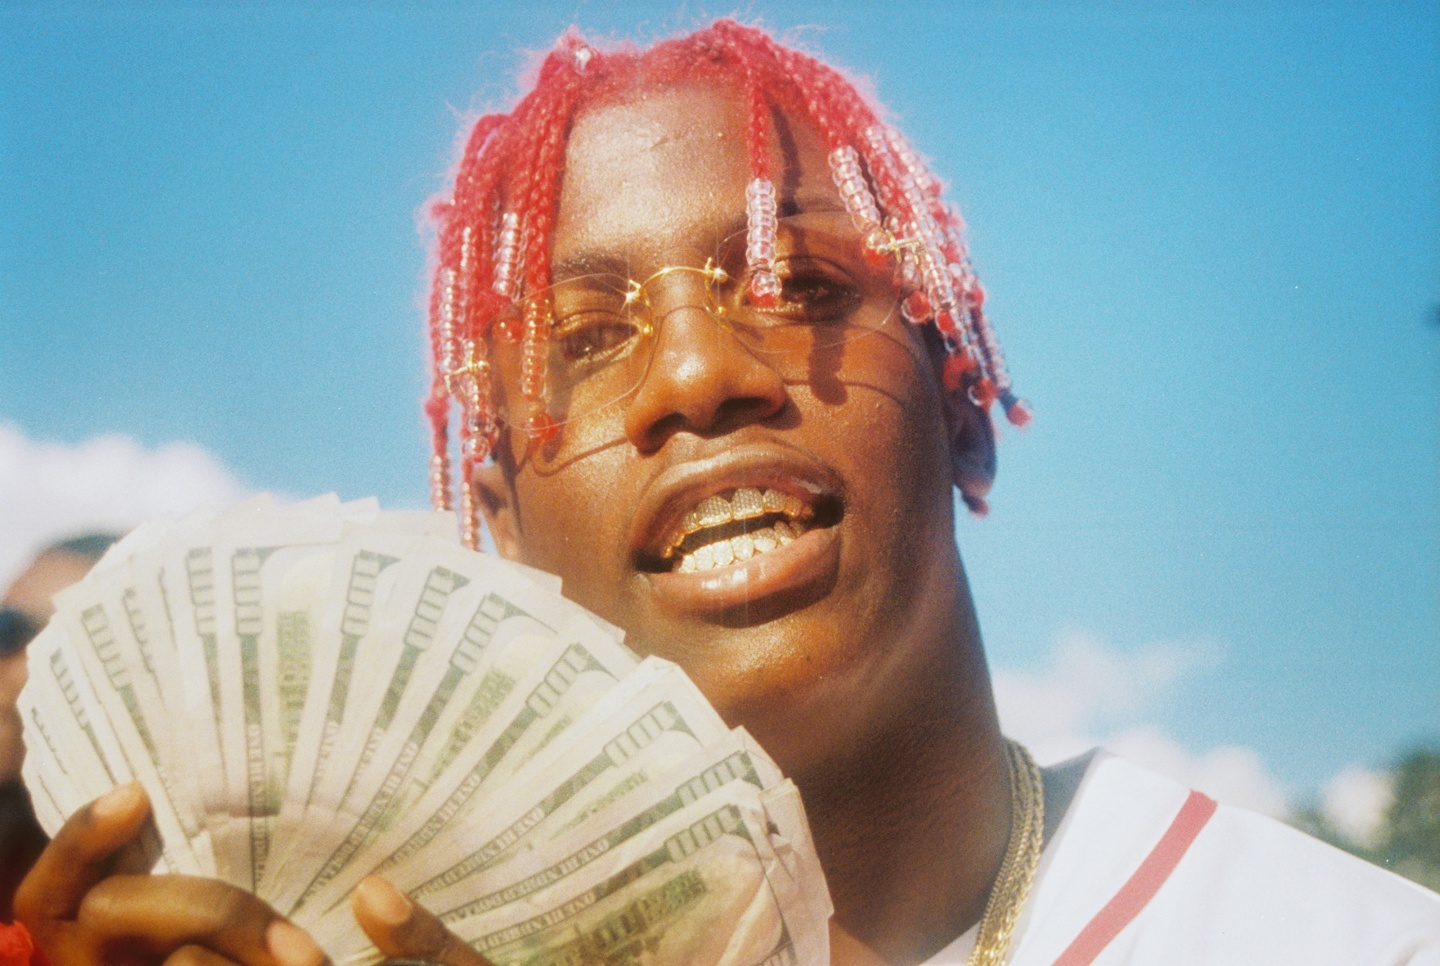 This Is What Making A Movie With Lil Yachty Is Like